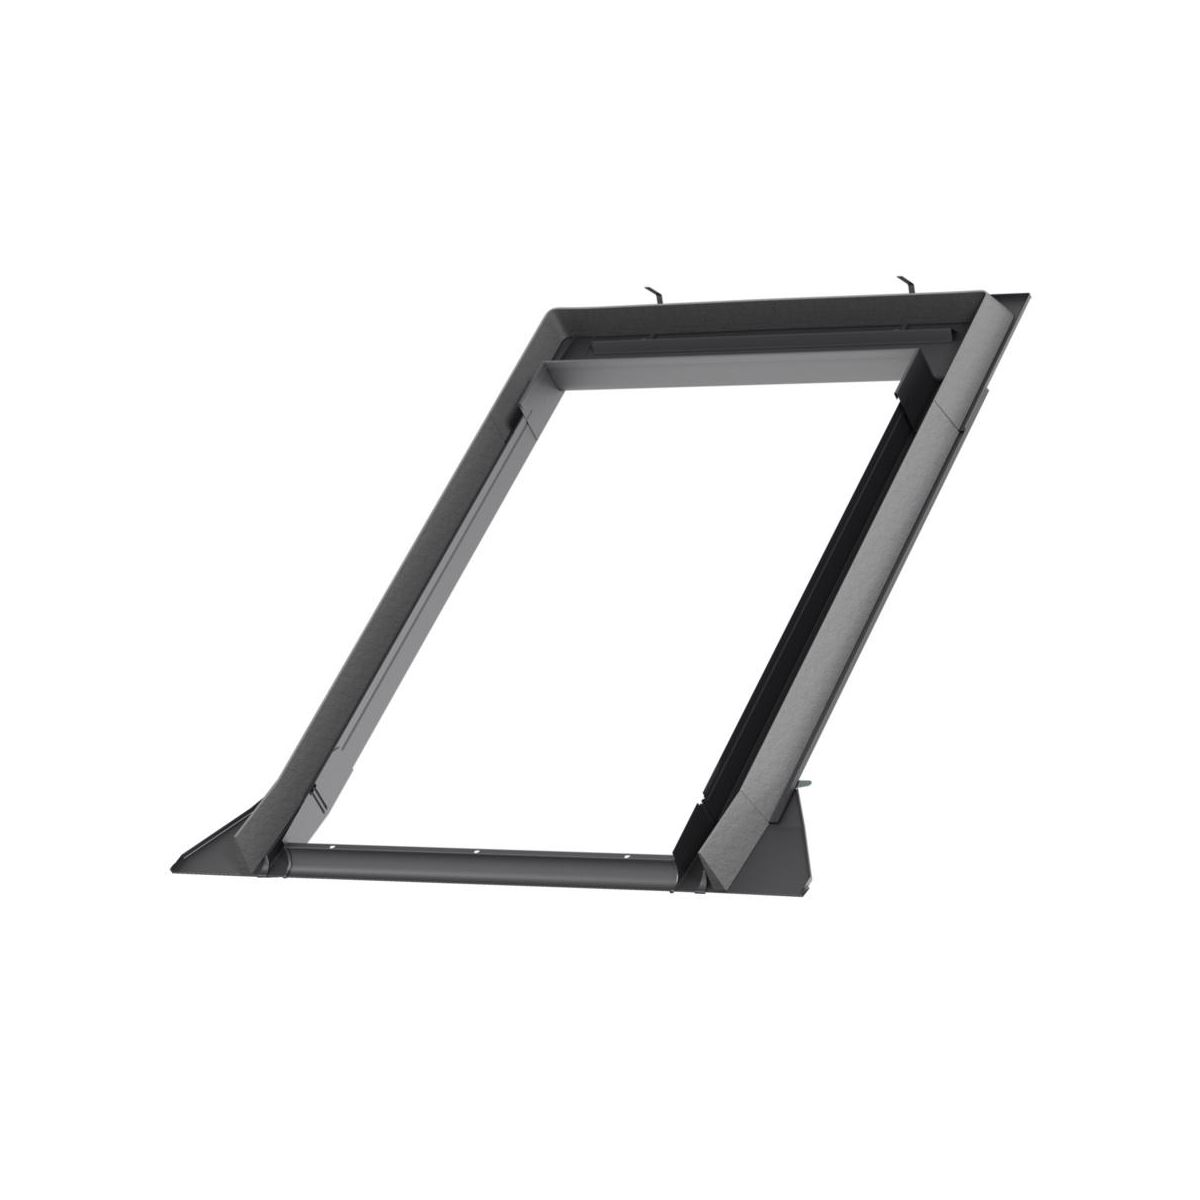 velux 55x78 leroy merlin store velux leroy merlin find this pin and more on matriaux destin. Black Bedroom Furniture Sets. Home Design Ideas